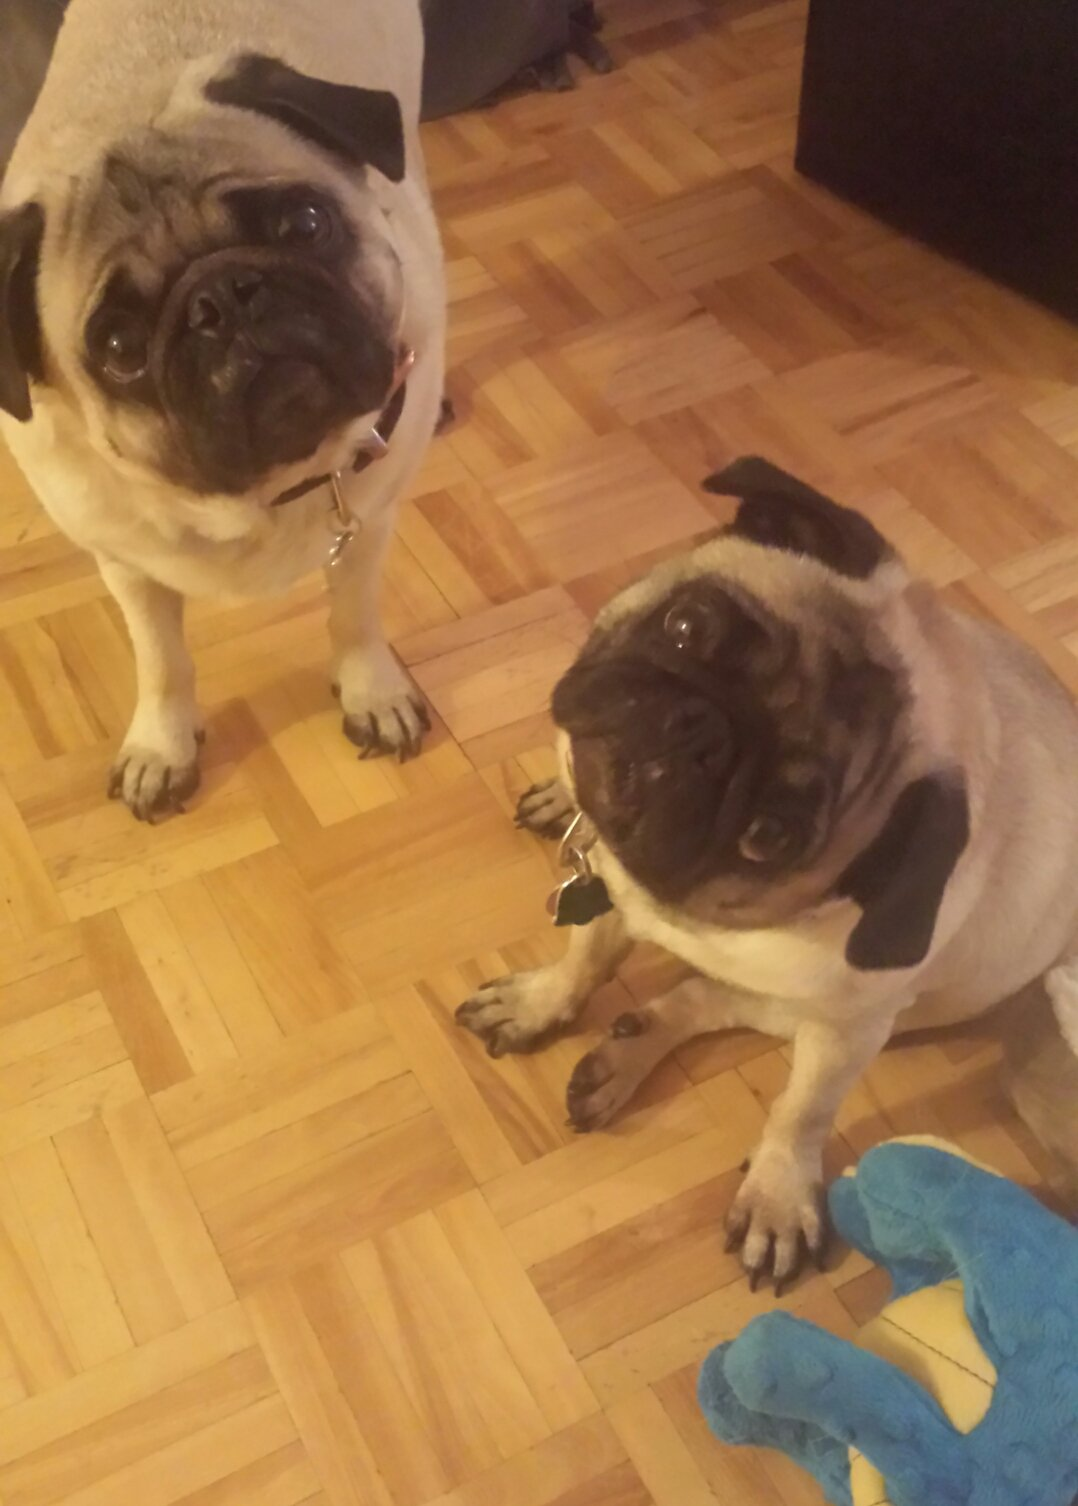 Stacey & the Tarot Pugs here. Having Twitter problems so we might be behind. #TarotRap https://t.co/kxfuDp1ZUs